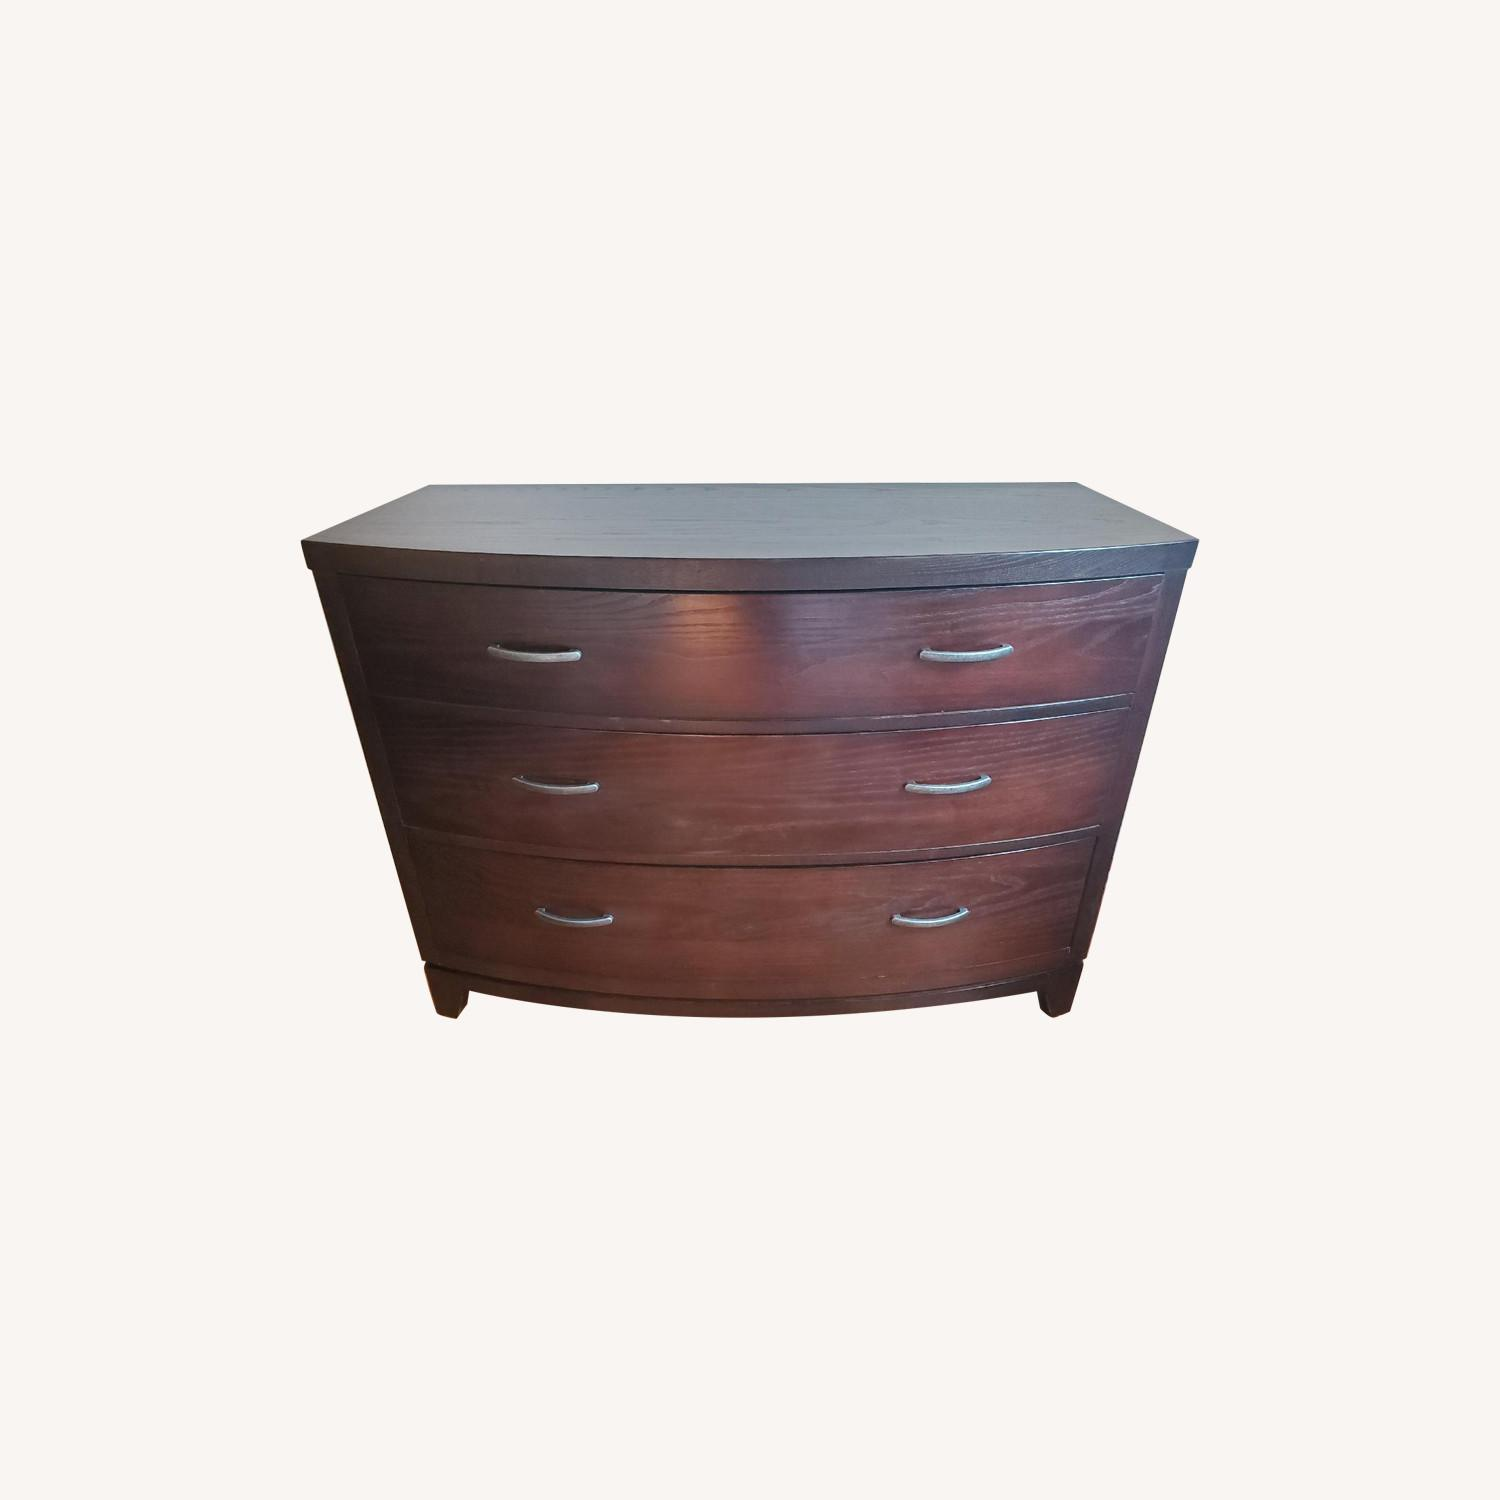 Ethan Allen Horizon Collection Bow Front Dresser - image-0